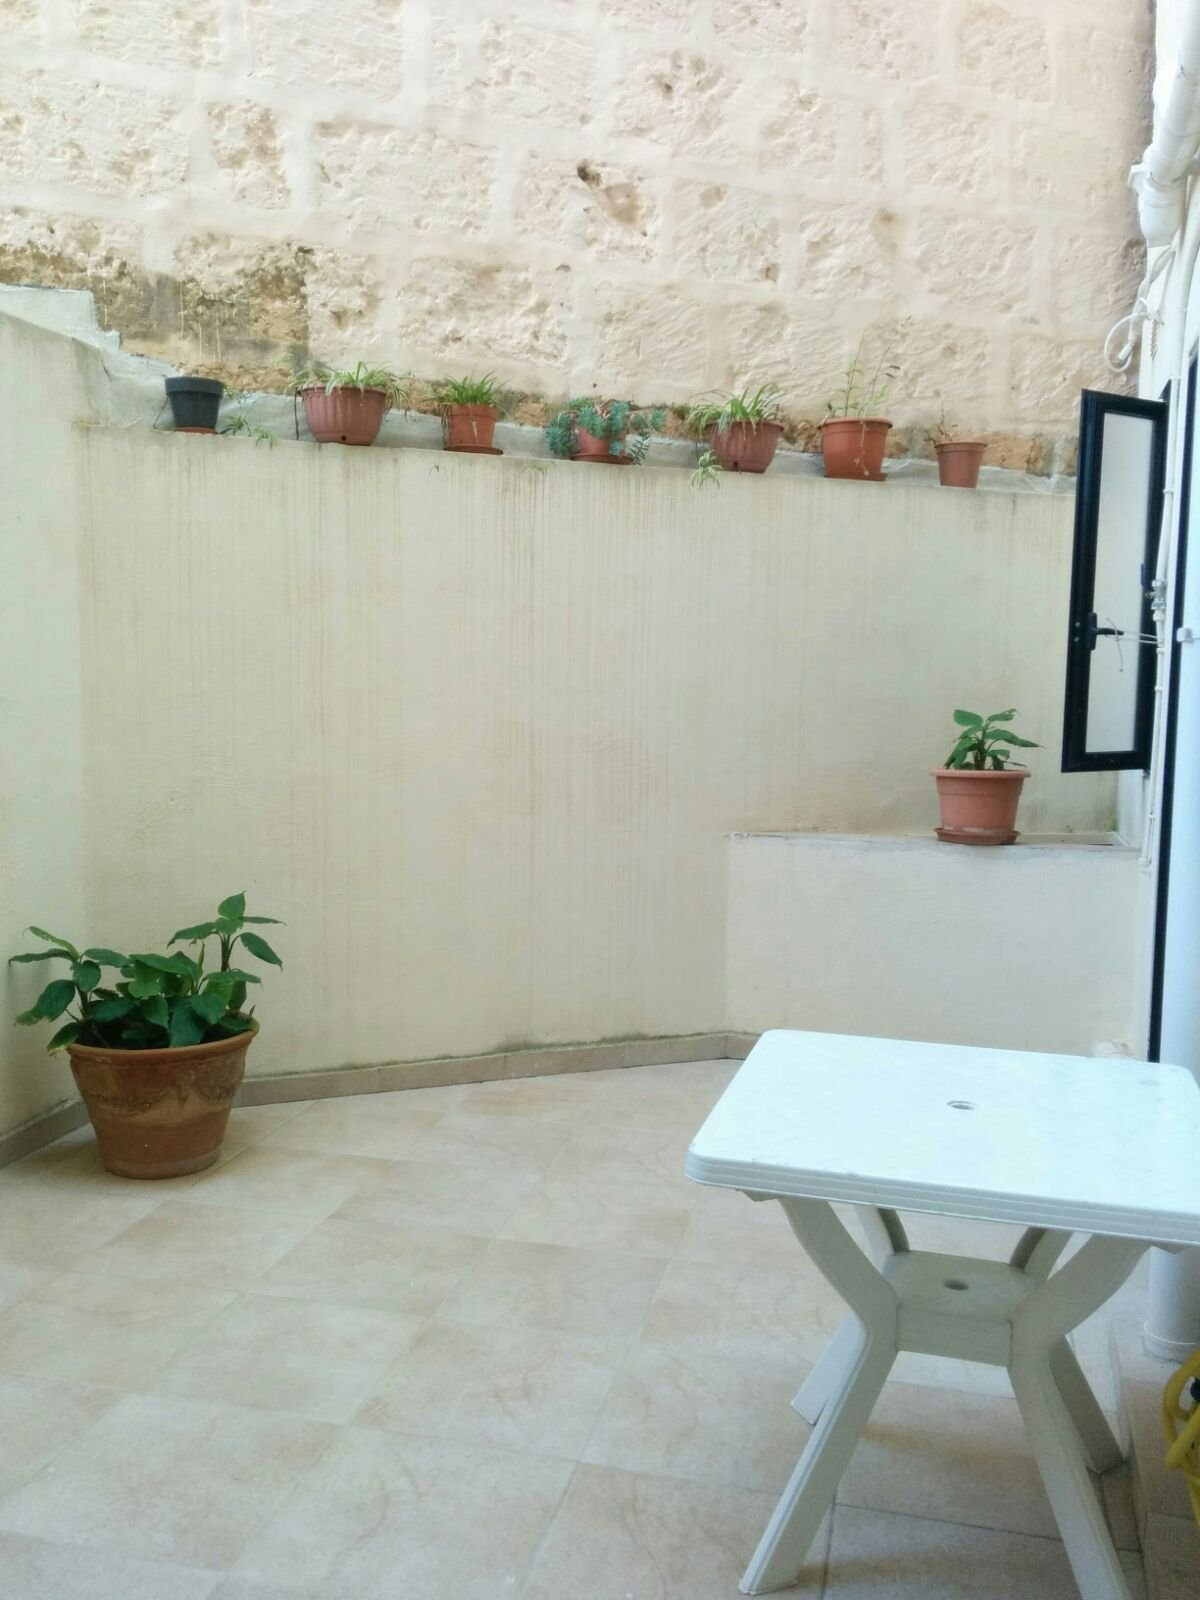 Fully furnished backyard rental Malta